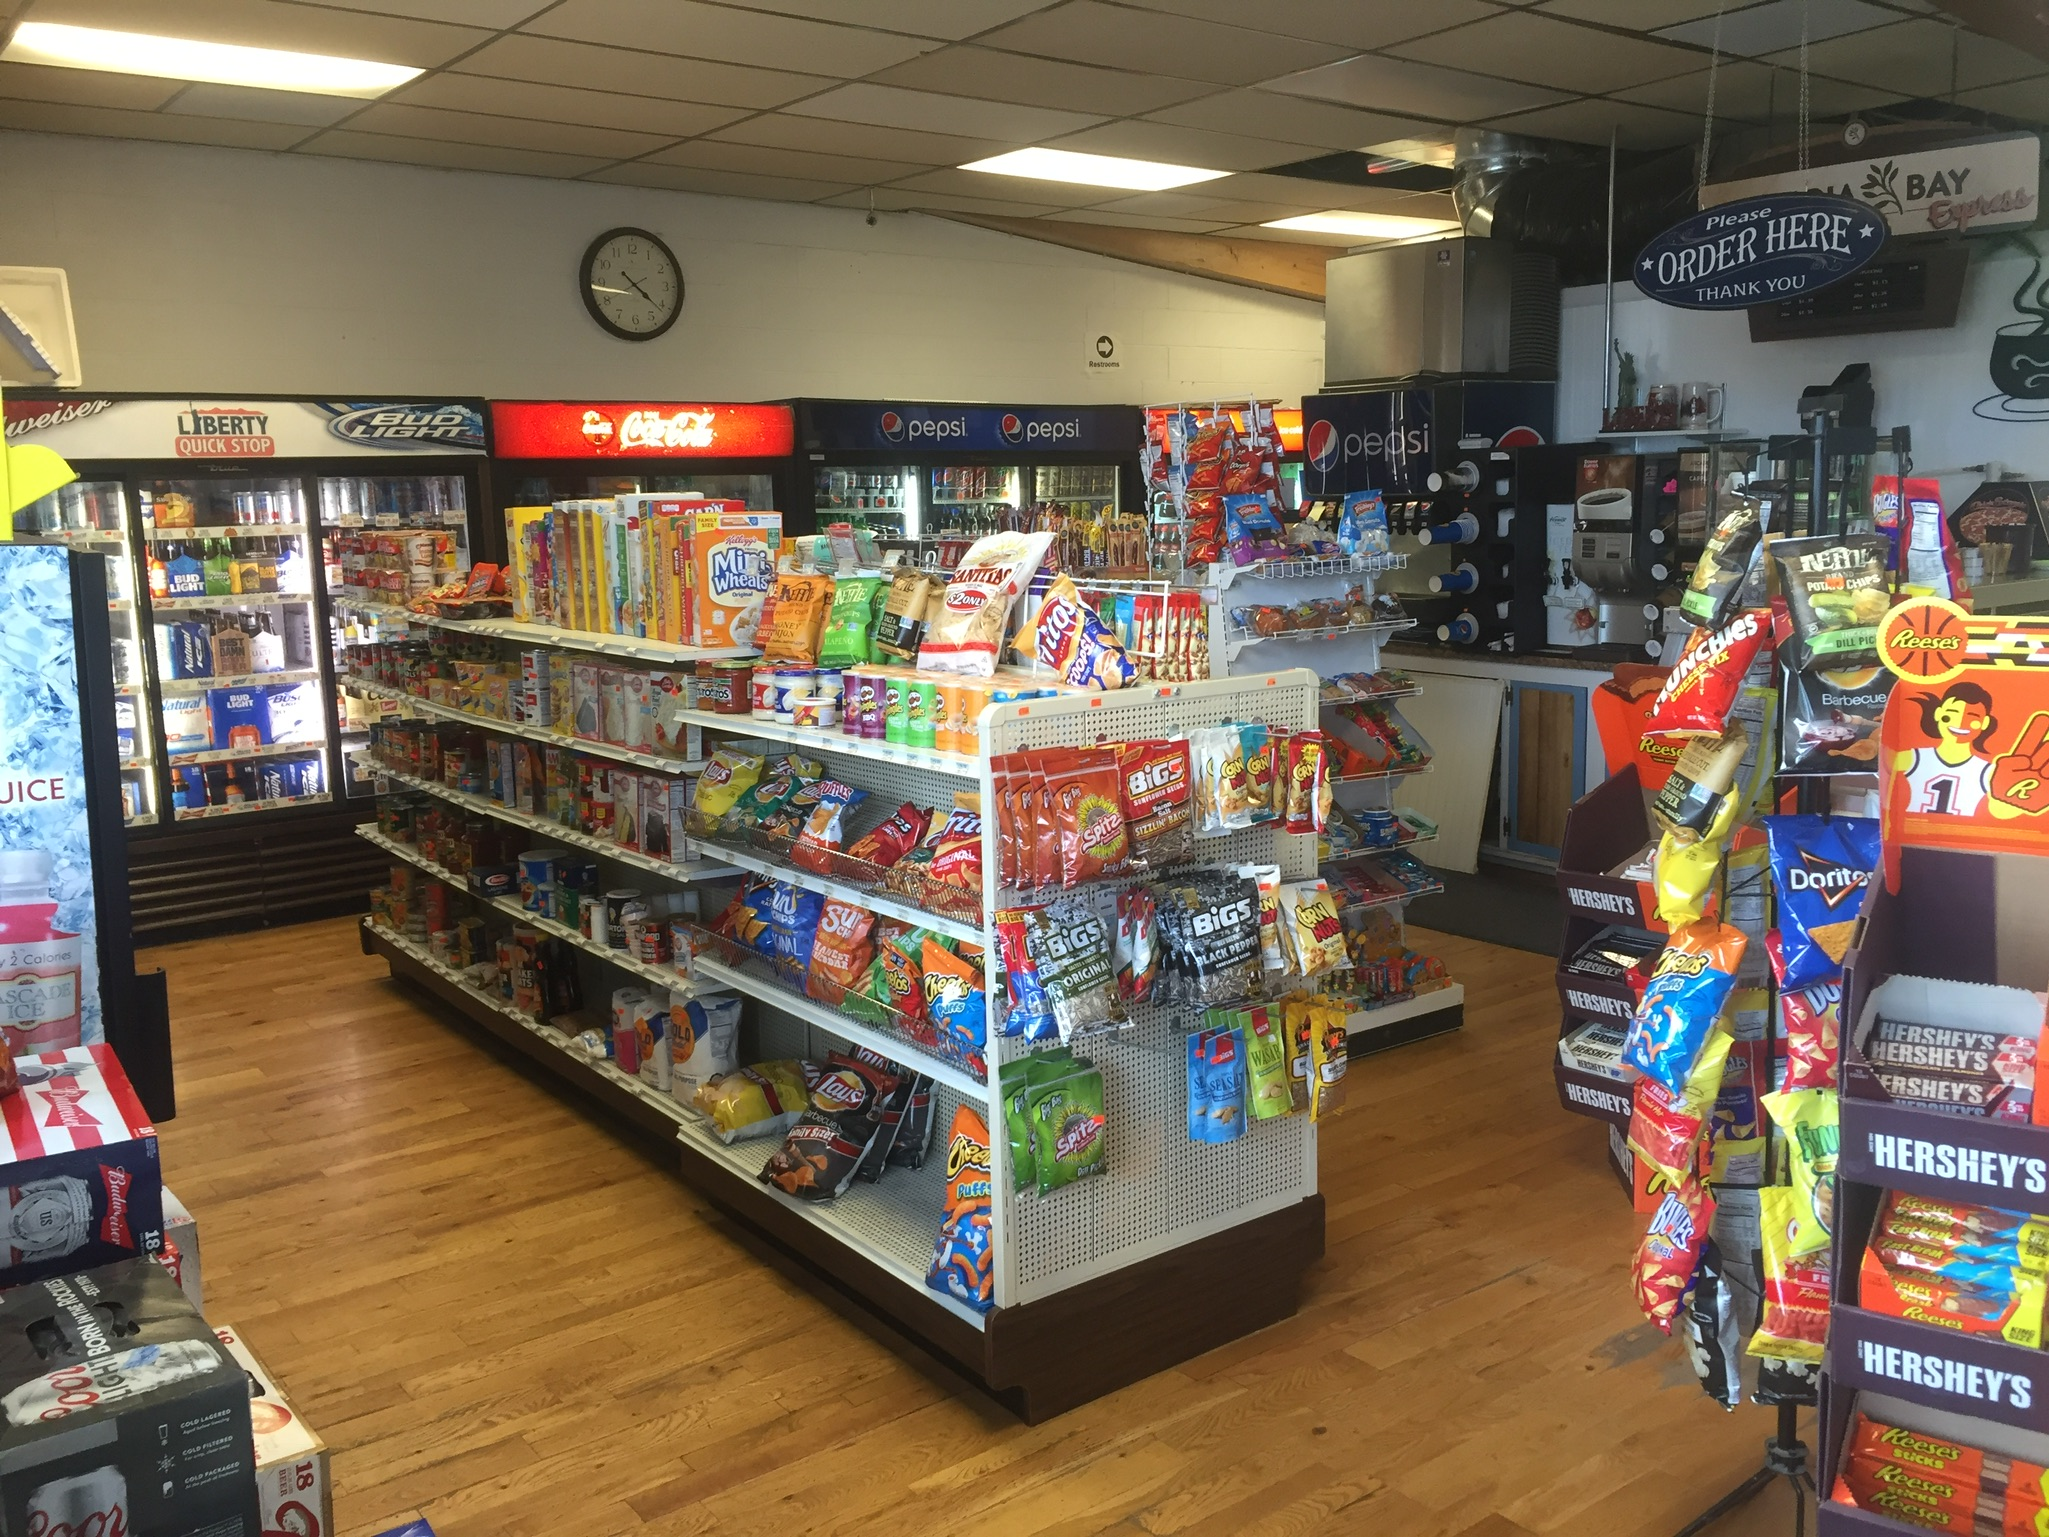 Drinks, Snacks, and essential grocery items are available at LIBERTY QUICK STOP